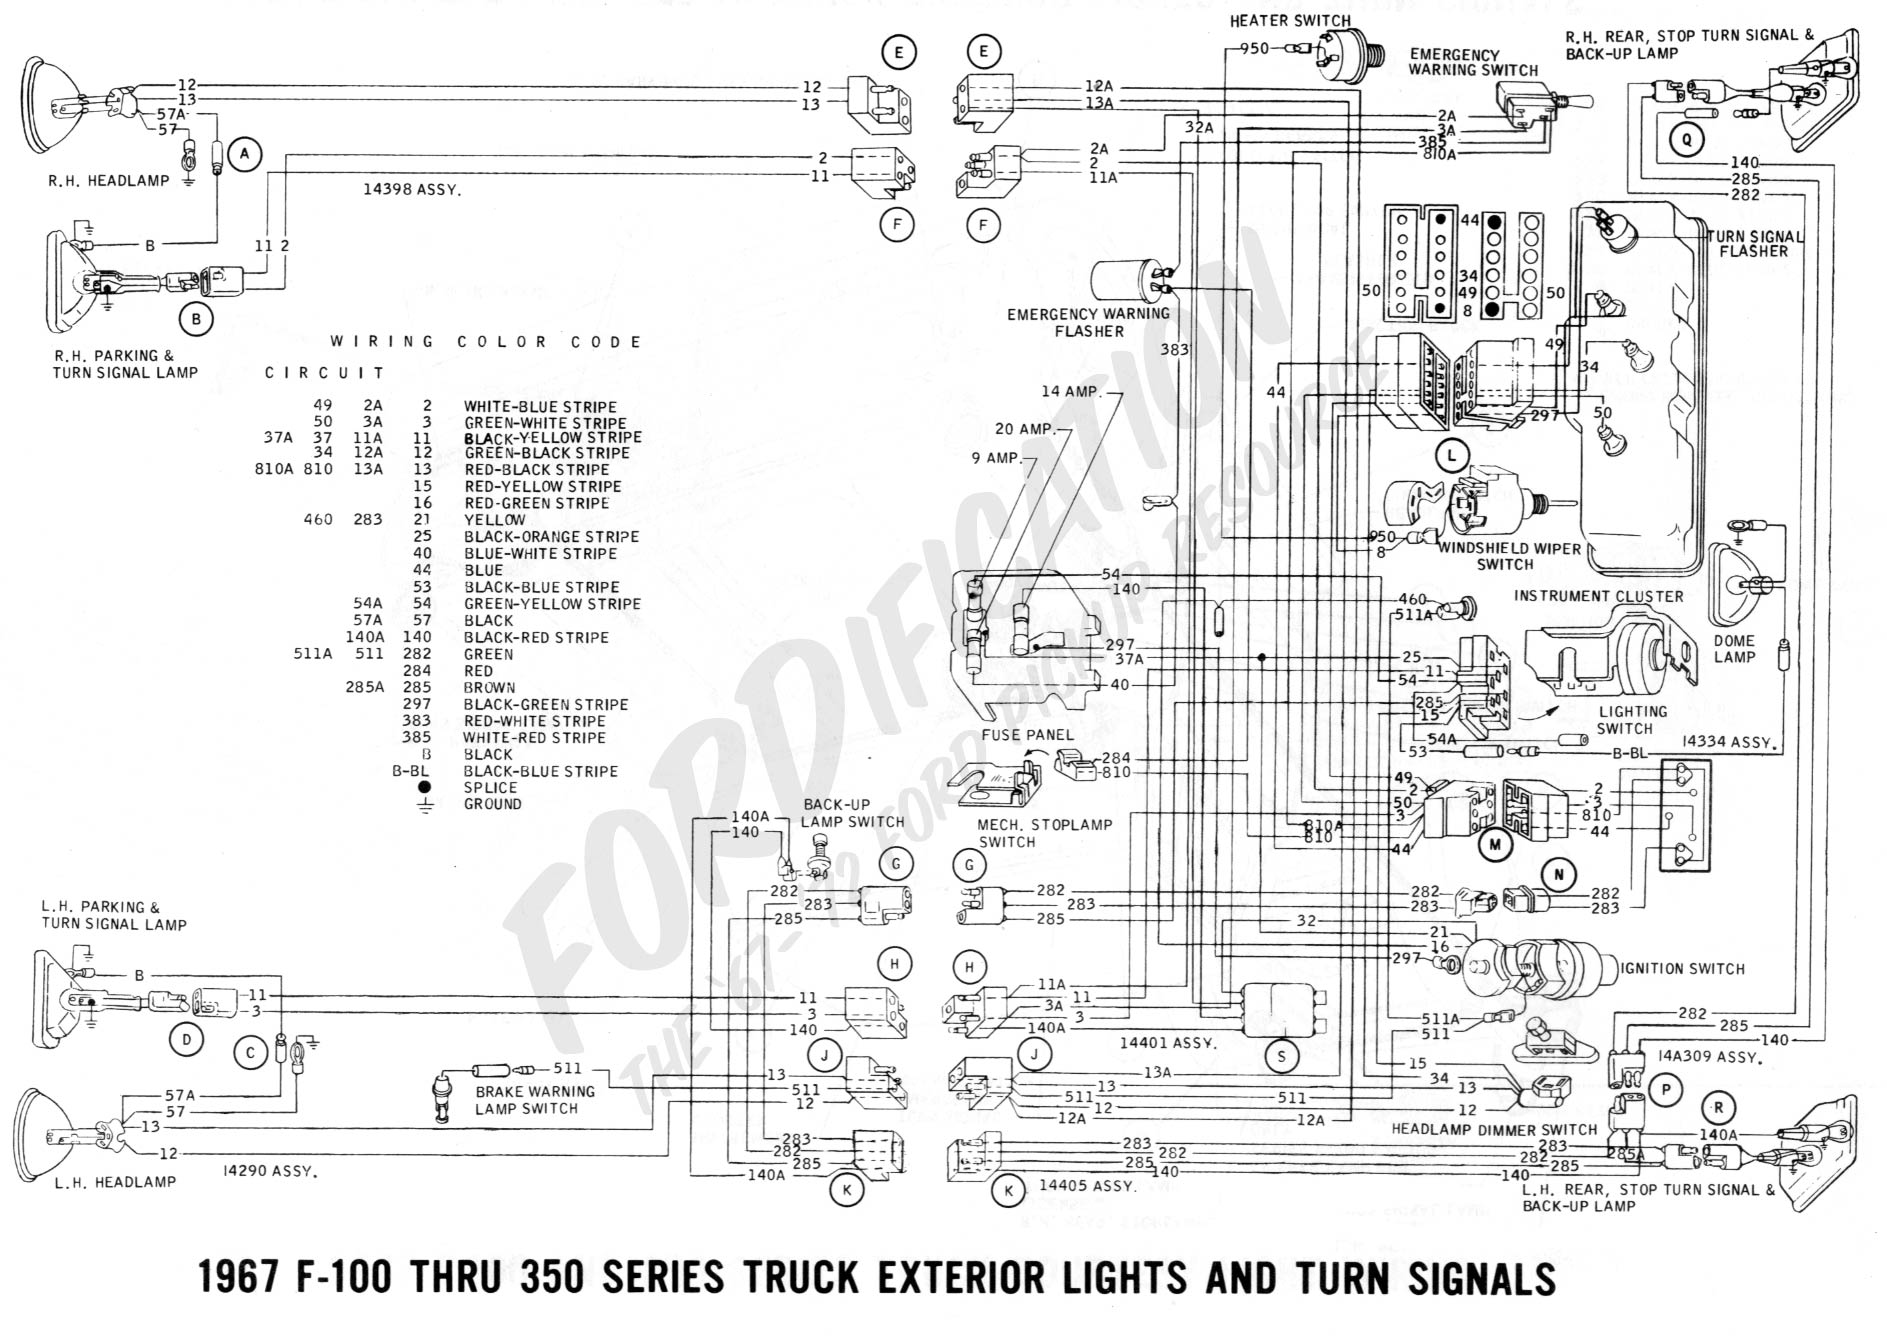 1973 Standard Beetle Wiring Diagram Circuit And Hub Vw Super 1971 Ford Truck Technical Drawings Schematics Section H Fuse